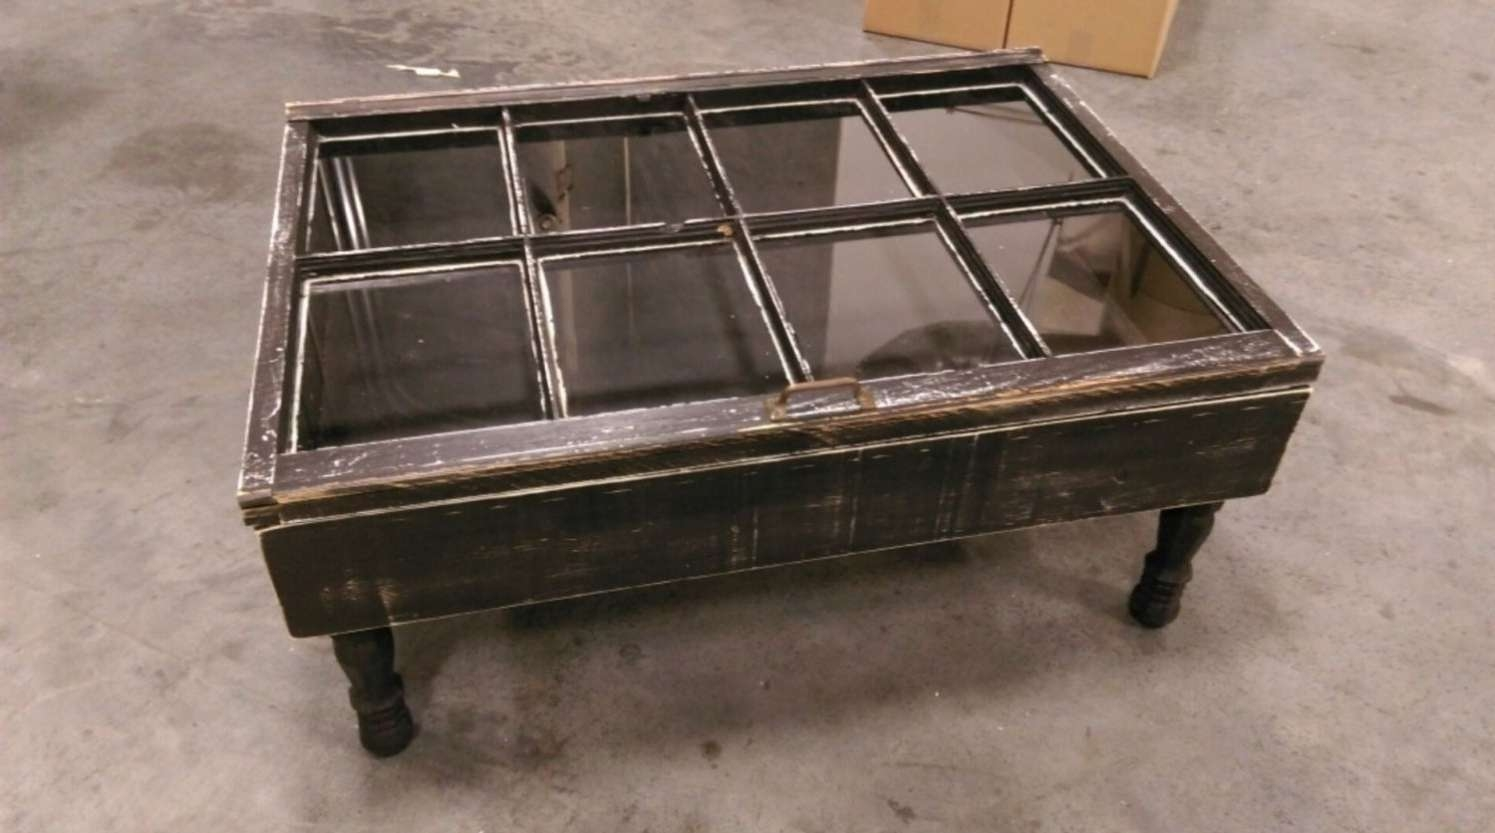 Popular Rustic Looking Coffee Tables Throughout Coffee Table : Rustic Looking Coffee Tables Wondrous Rustic (View 15 of 20)